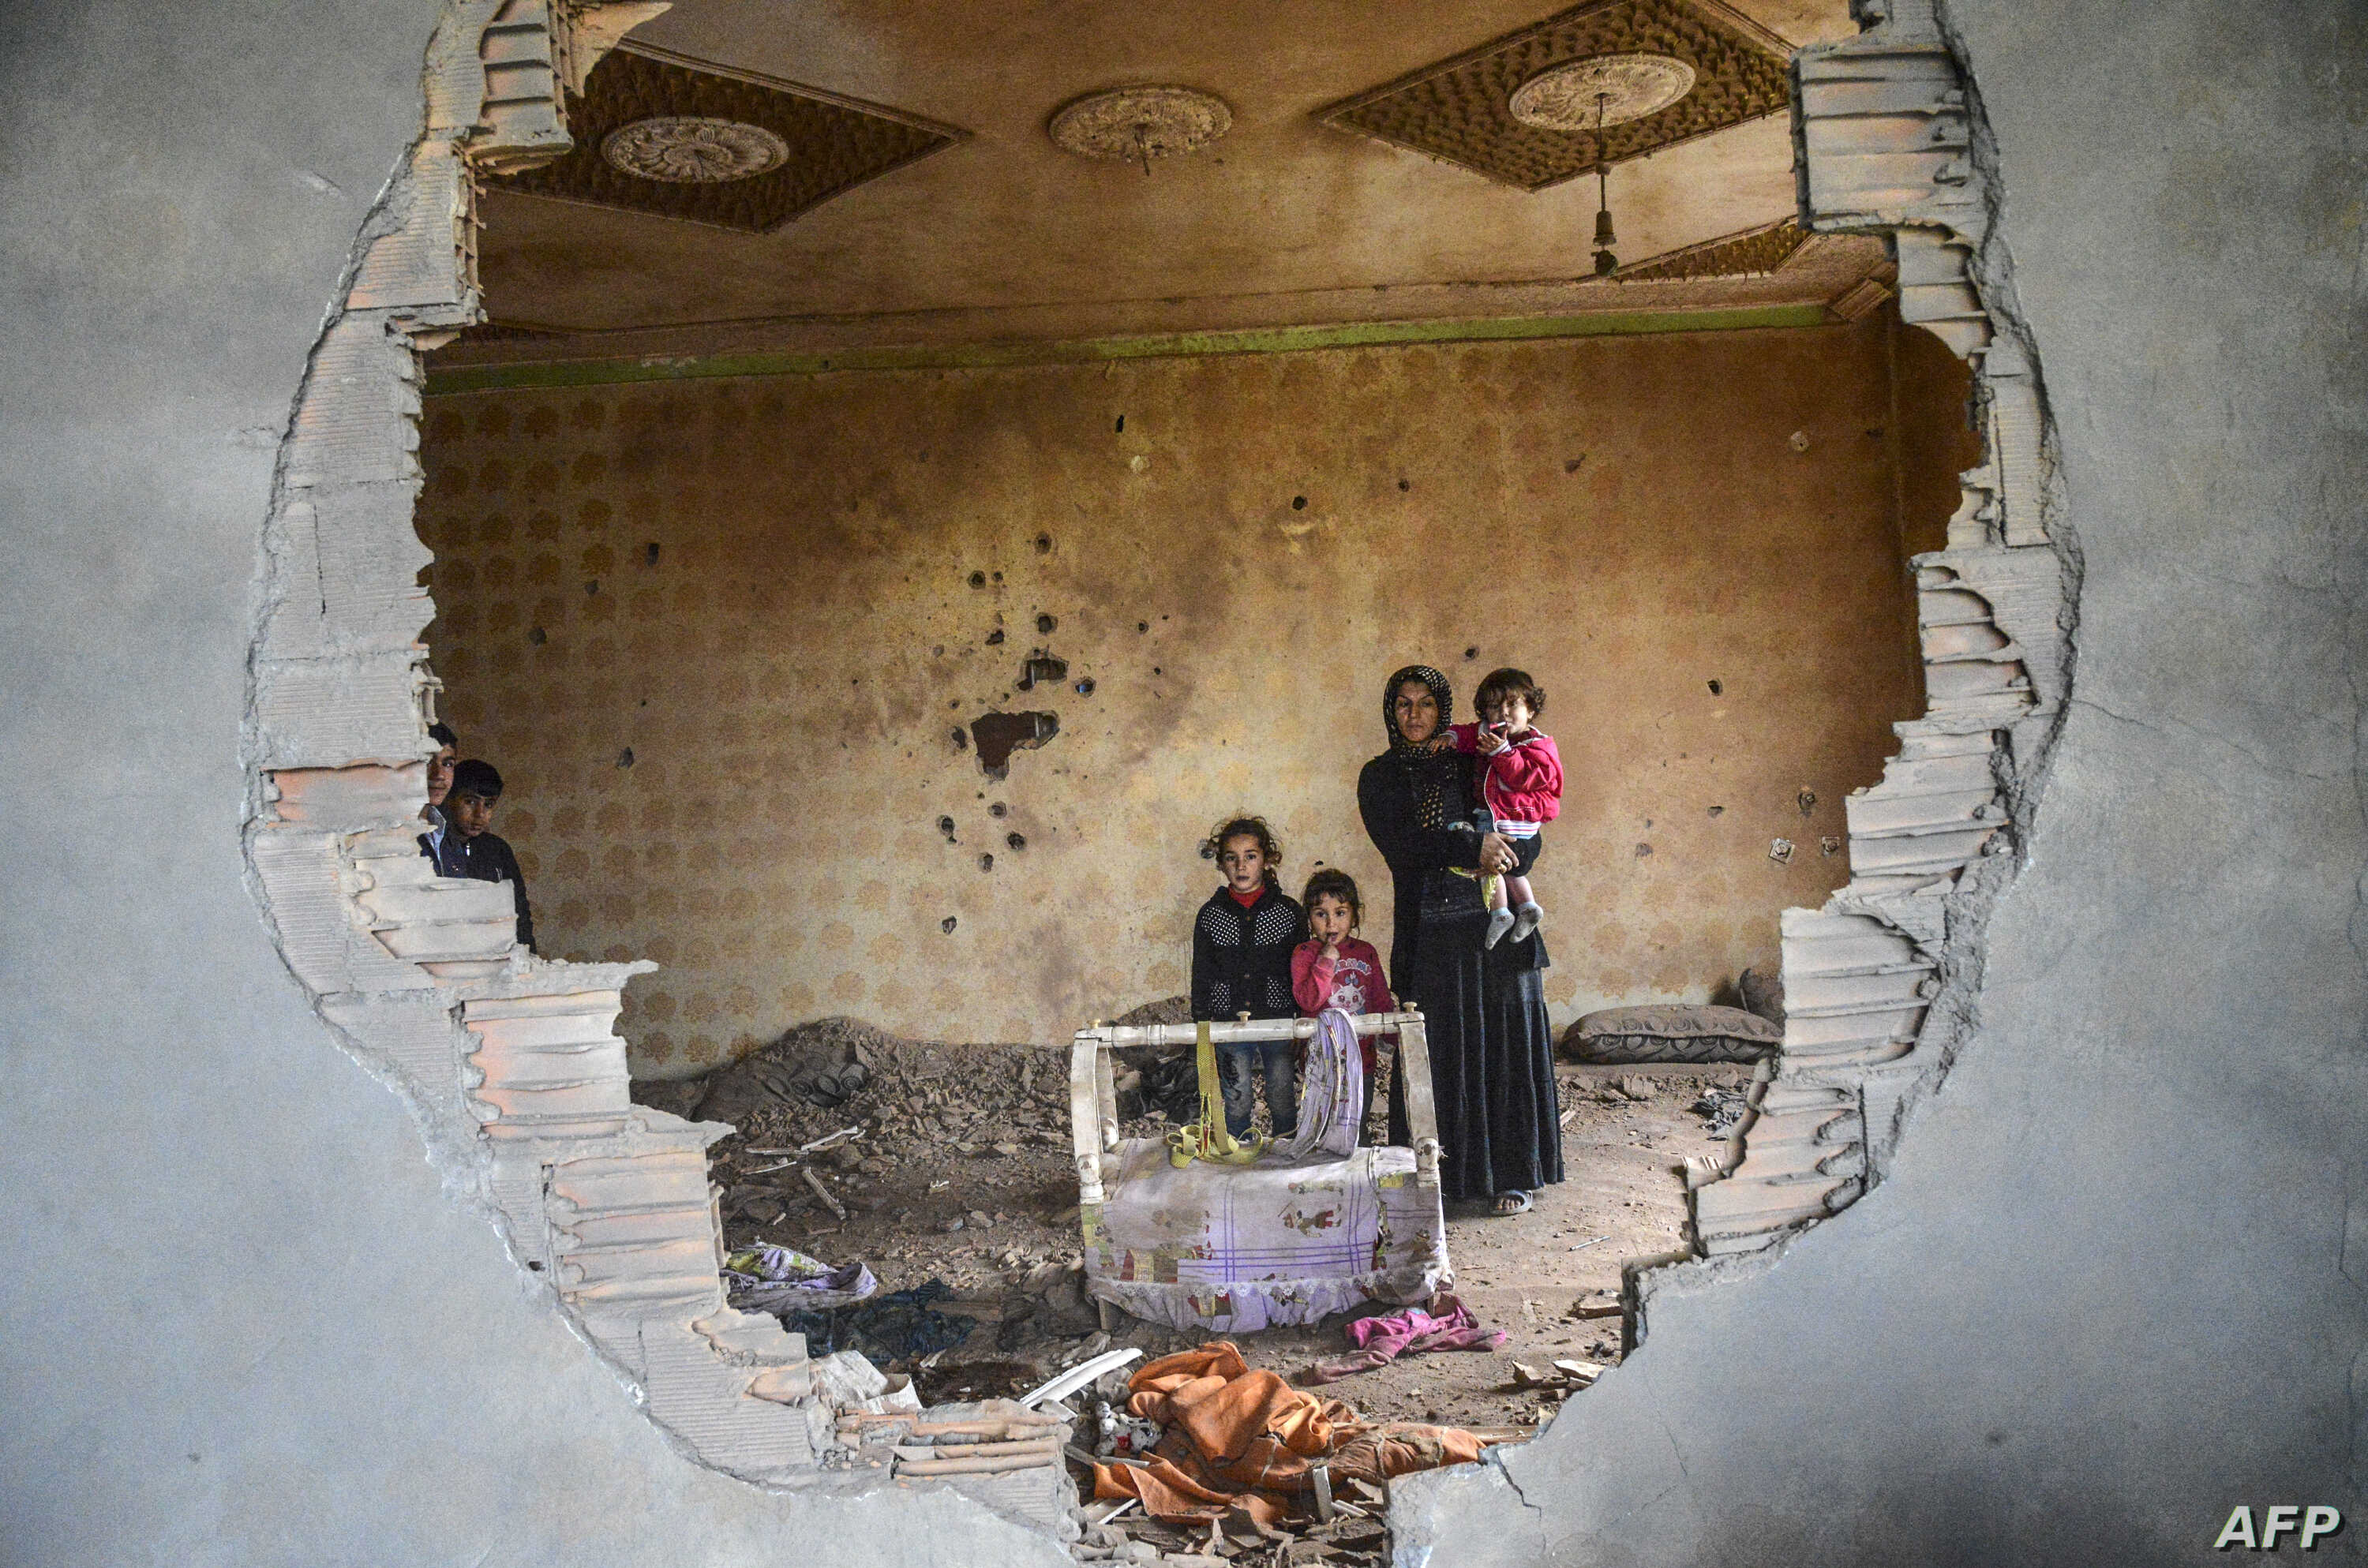 A women and her children stand in the ruins of battle-damaged house in the Kurdish town of Silopi, in southeastern Turkey, near the border with Iraq on January 19, 2016.